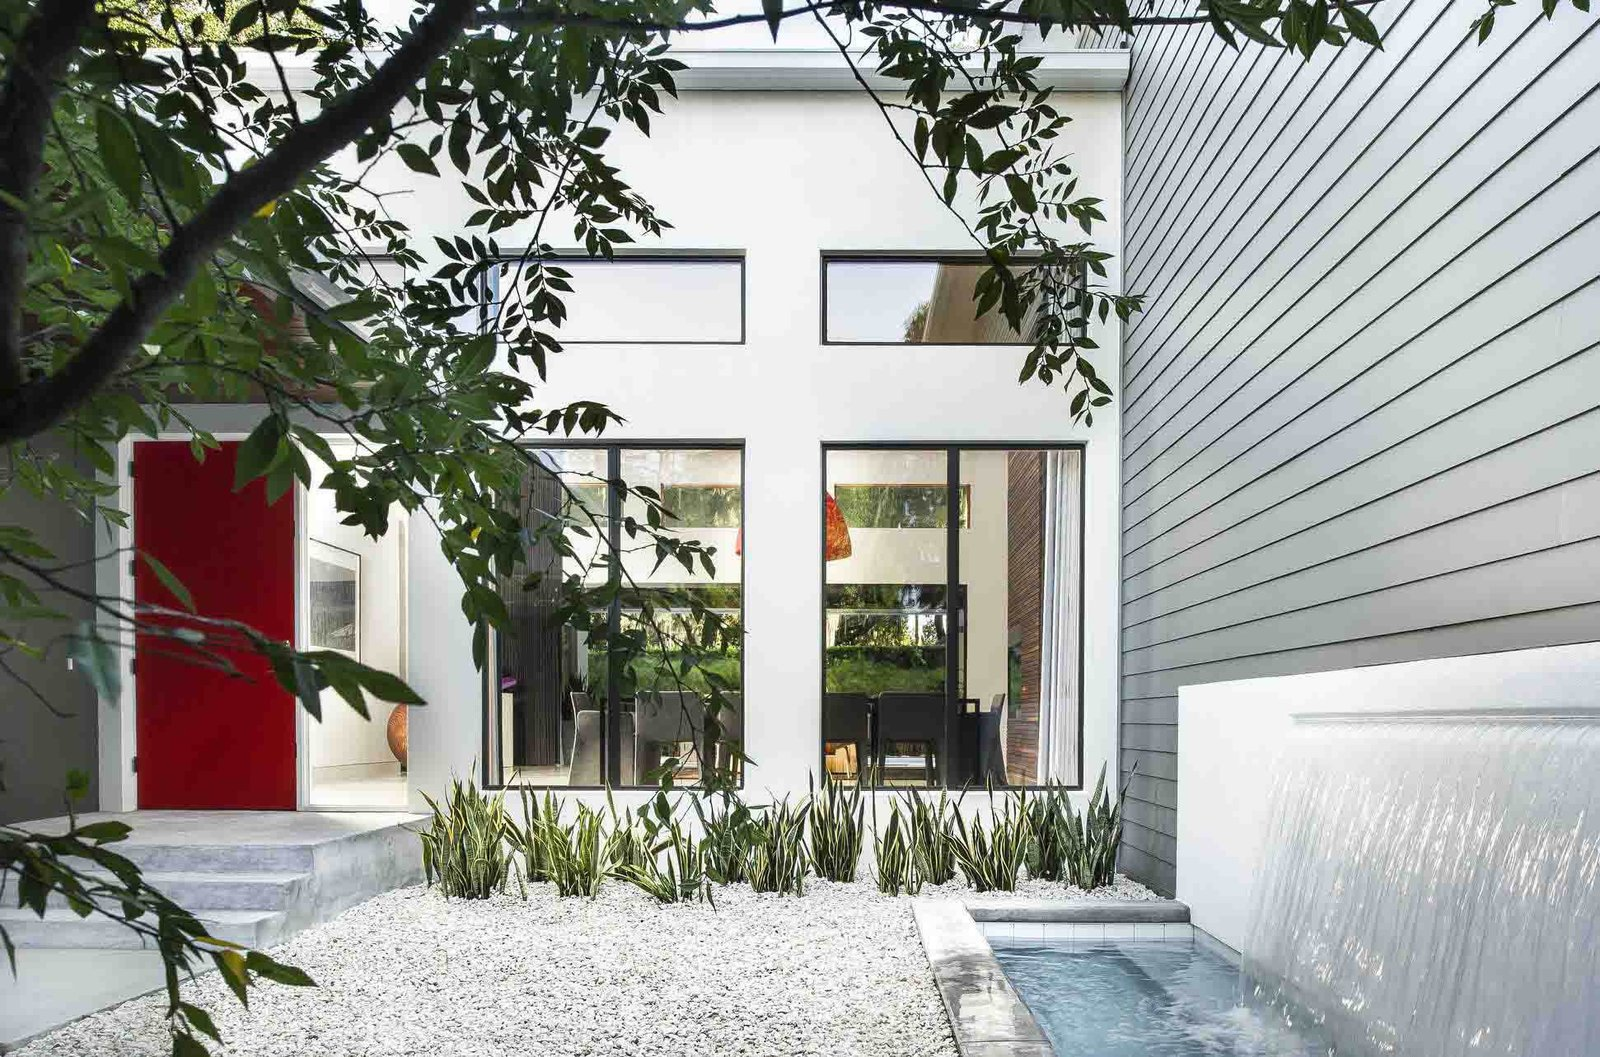 The red door was De Azevedo's idea, says Phil Kean, president of the Phil Kean Design Group. It adds a spash of color to the front courtyard, which is simply landscaped with gravel and low-maintenance plants. A water feature was installed next to the James Hardie fiber-cement siding.